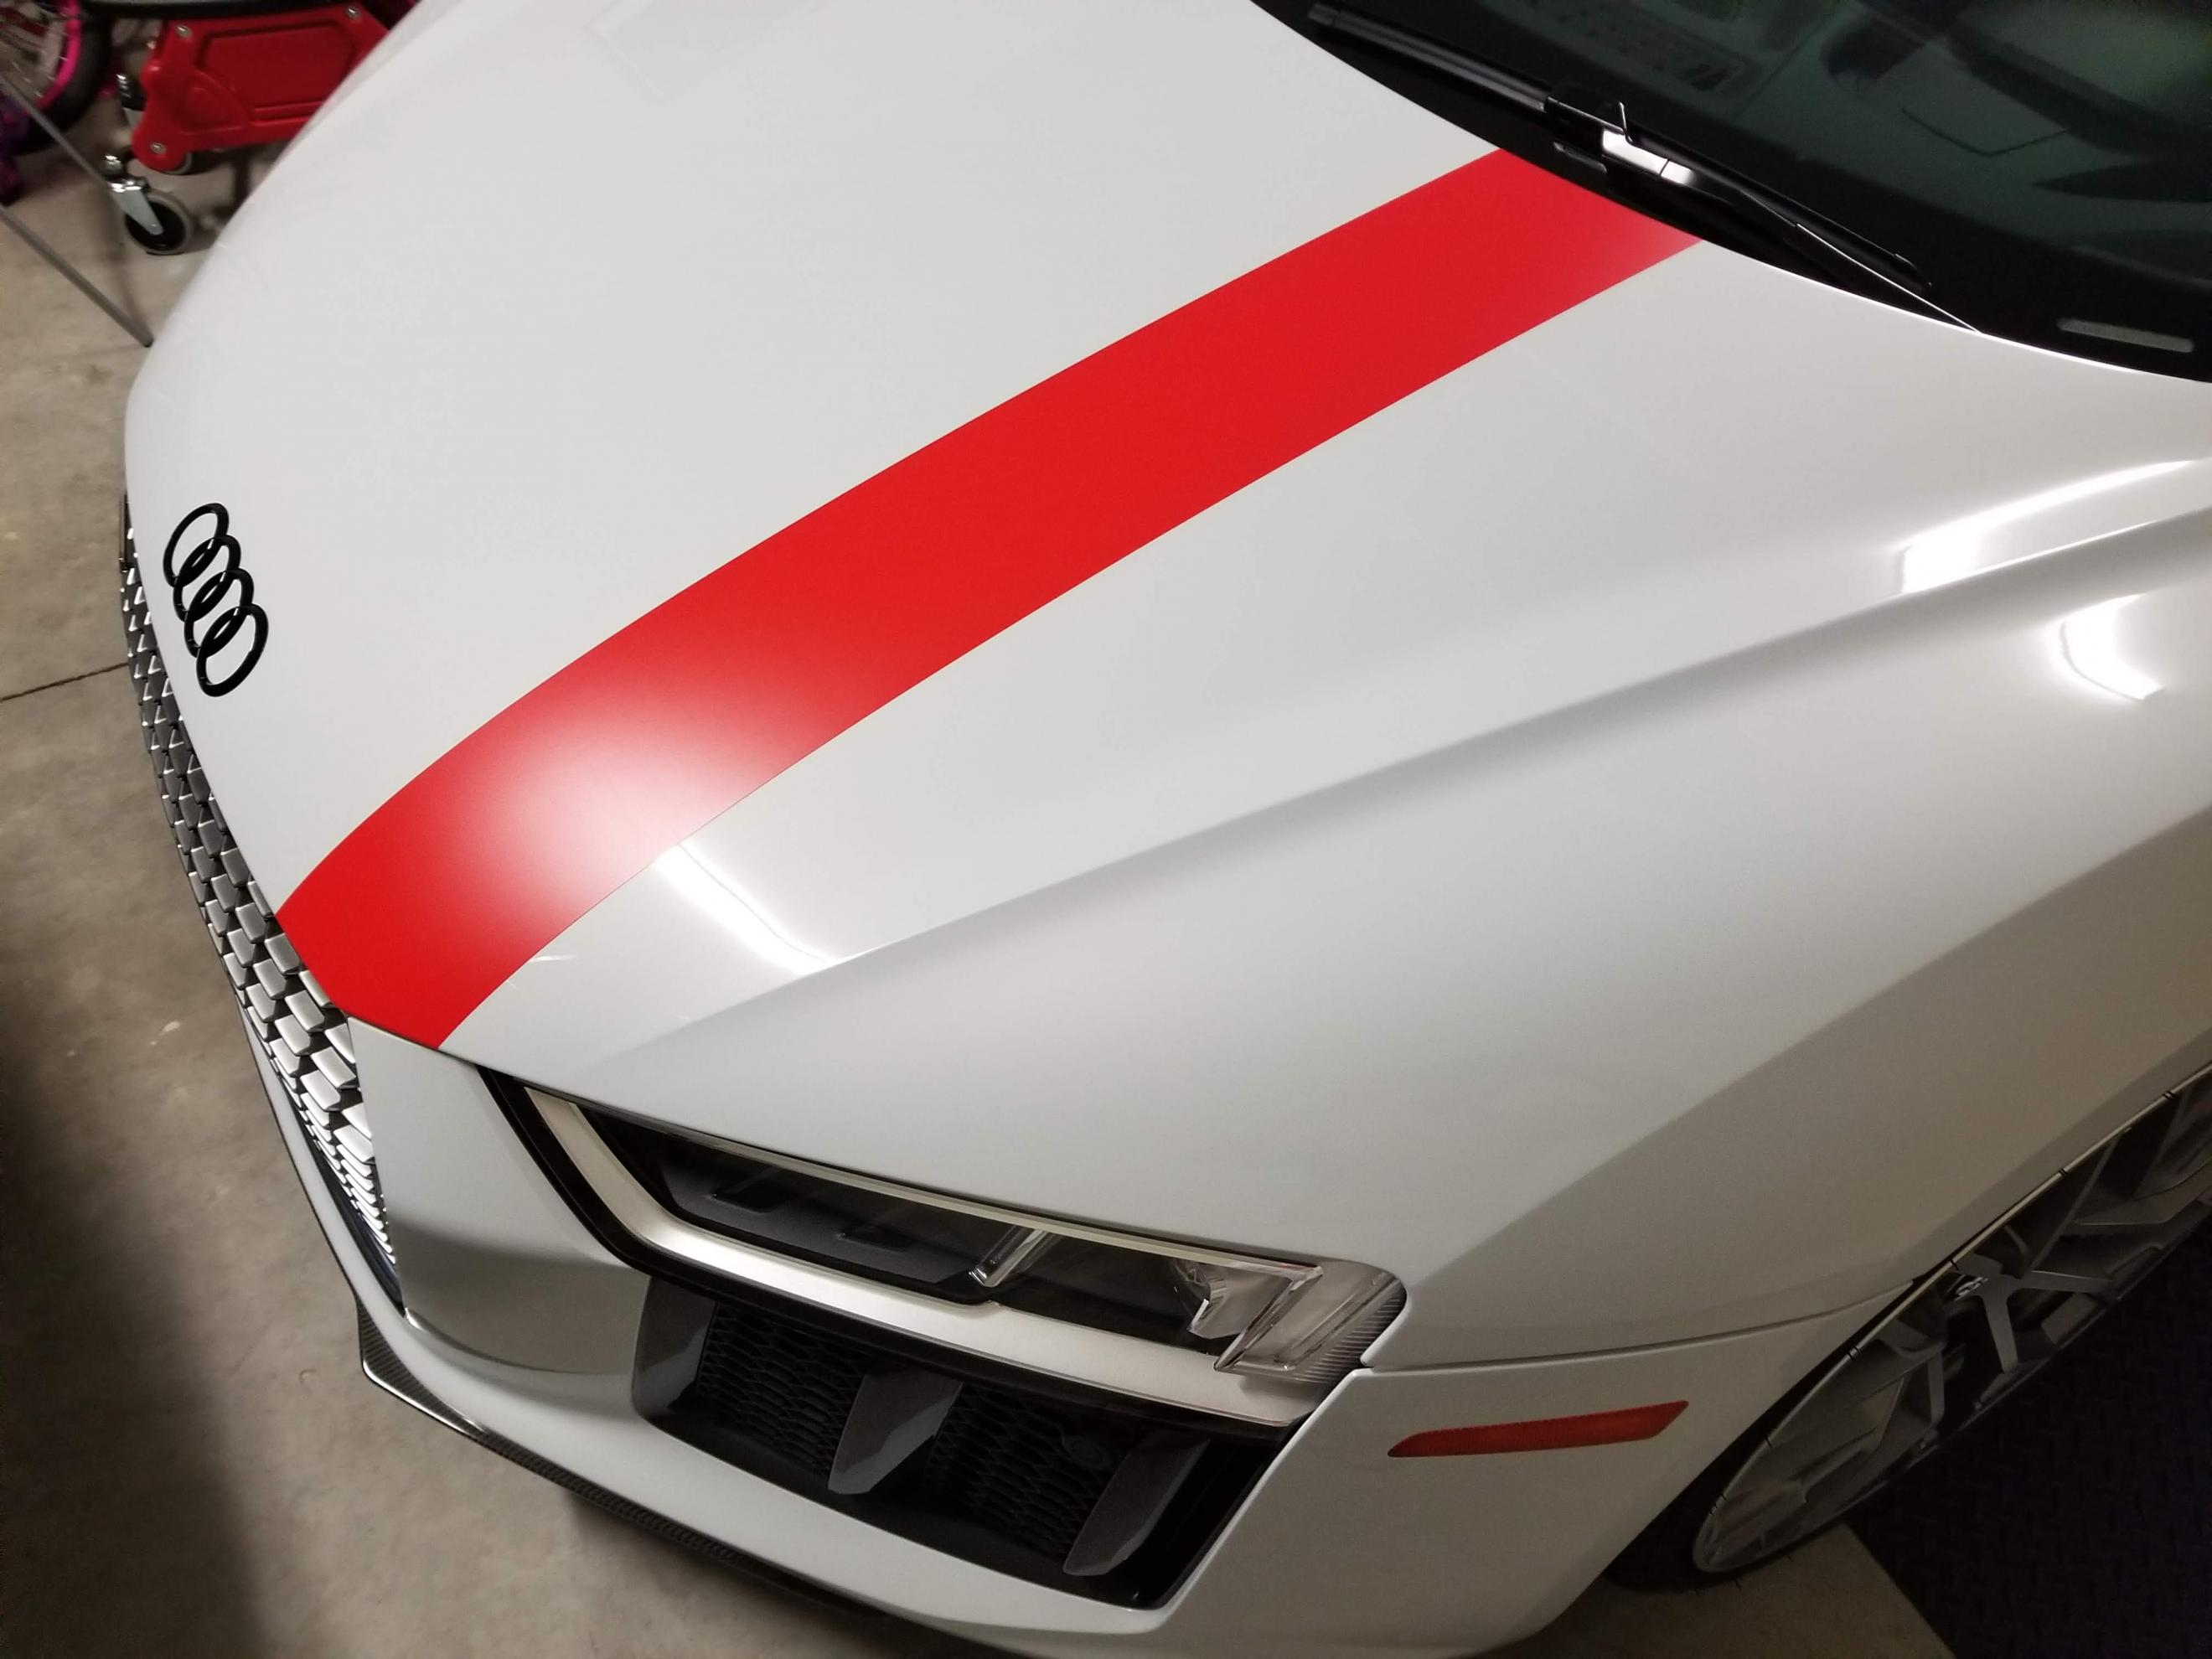 What did you do with your R8 today?-20190504_103034.jpg